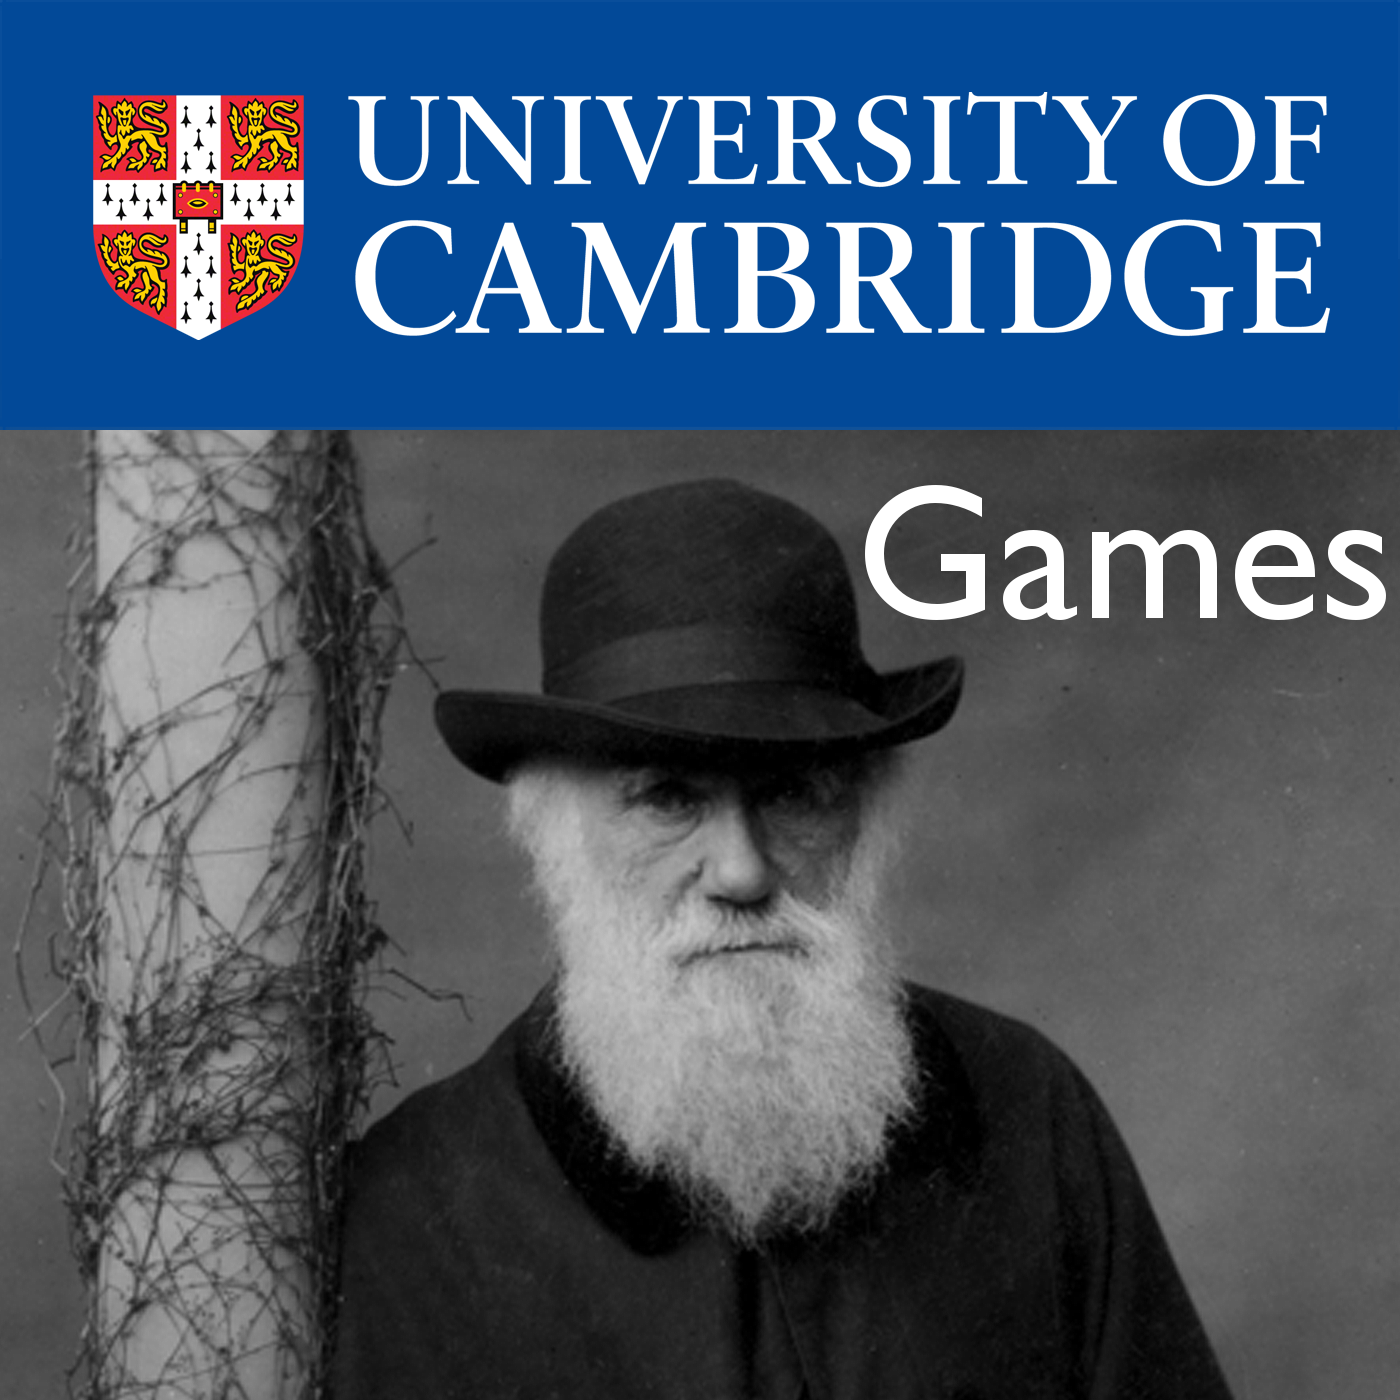 Games – Darwin College Lecture Series 2016's image